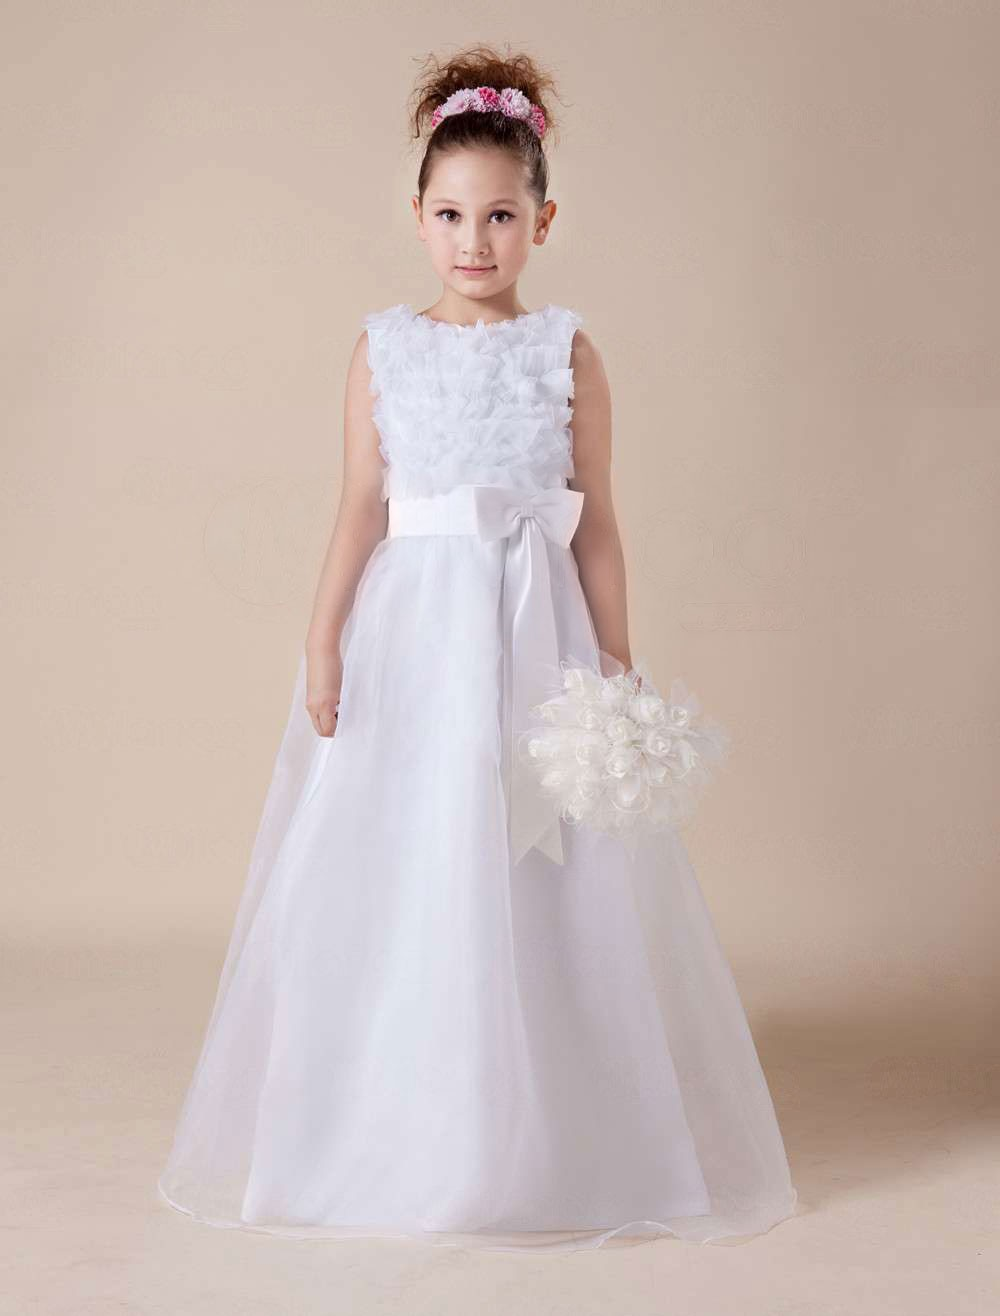 Floor-Length / Long Flower Girl Dresses, Cheap Flower Girl Dresses ...